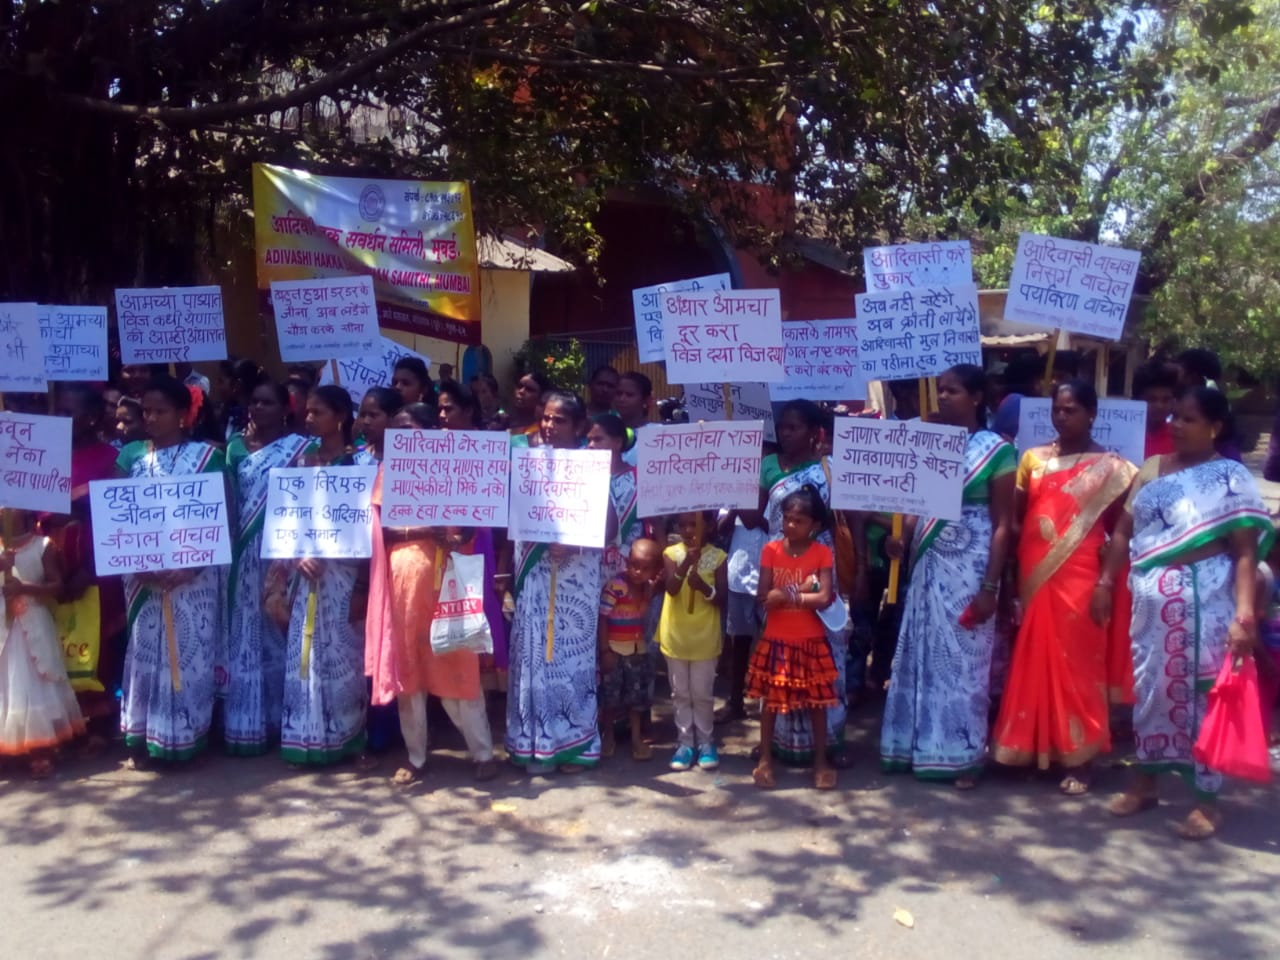 Tribals in Aarey Colony Protest Over Relocation and Unavailability of Basic Needs